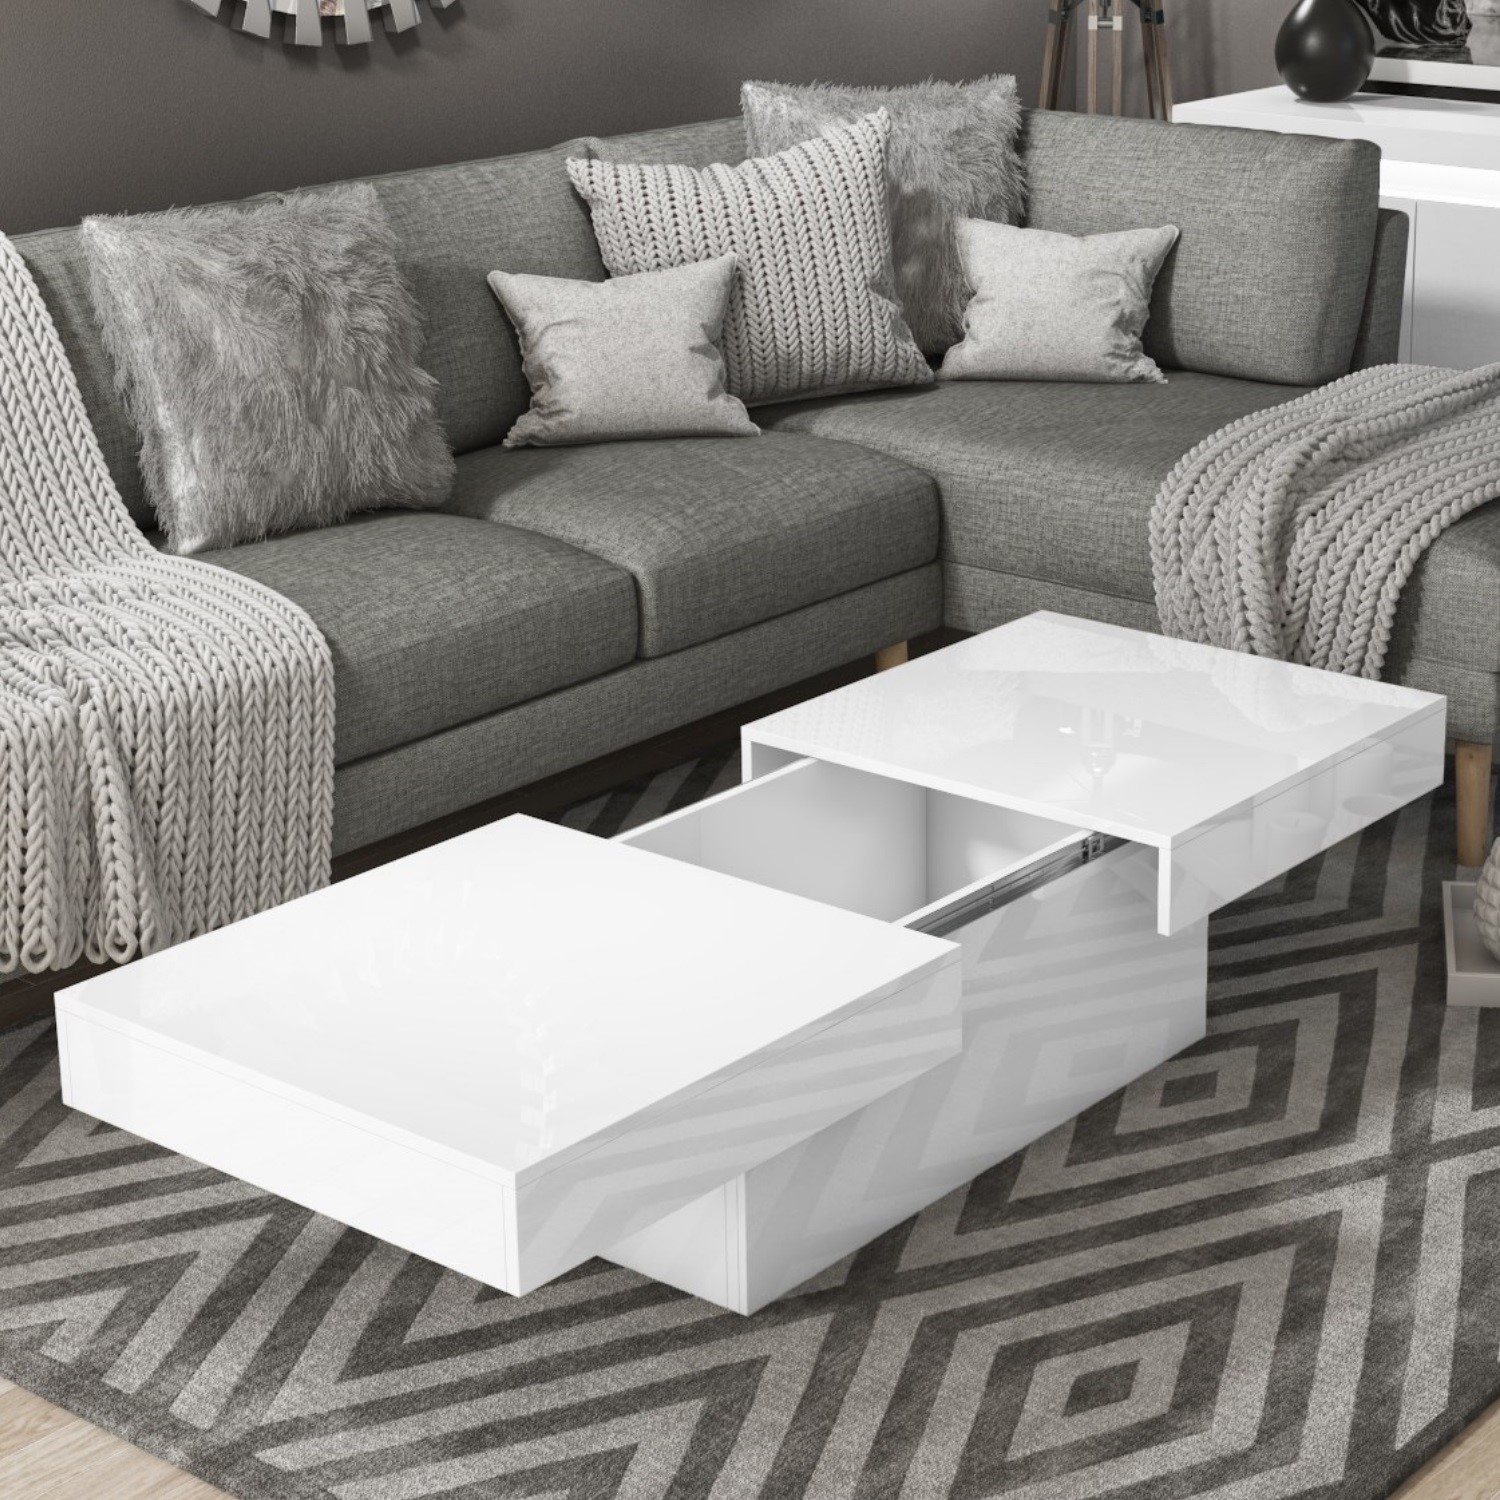 Details About Storage Coffee Table In White High Gloss Tiffany Tiff037